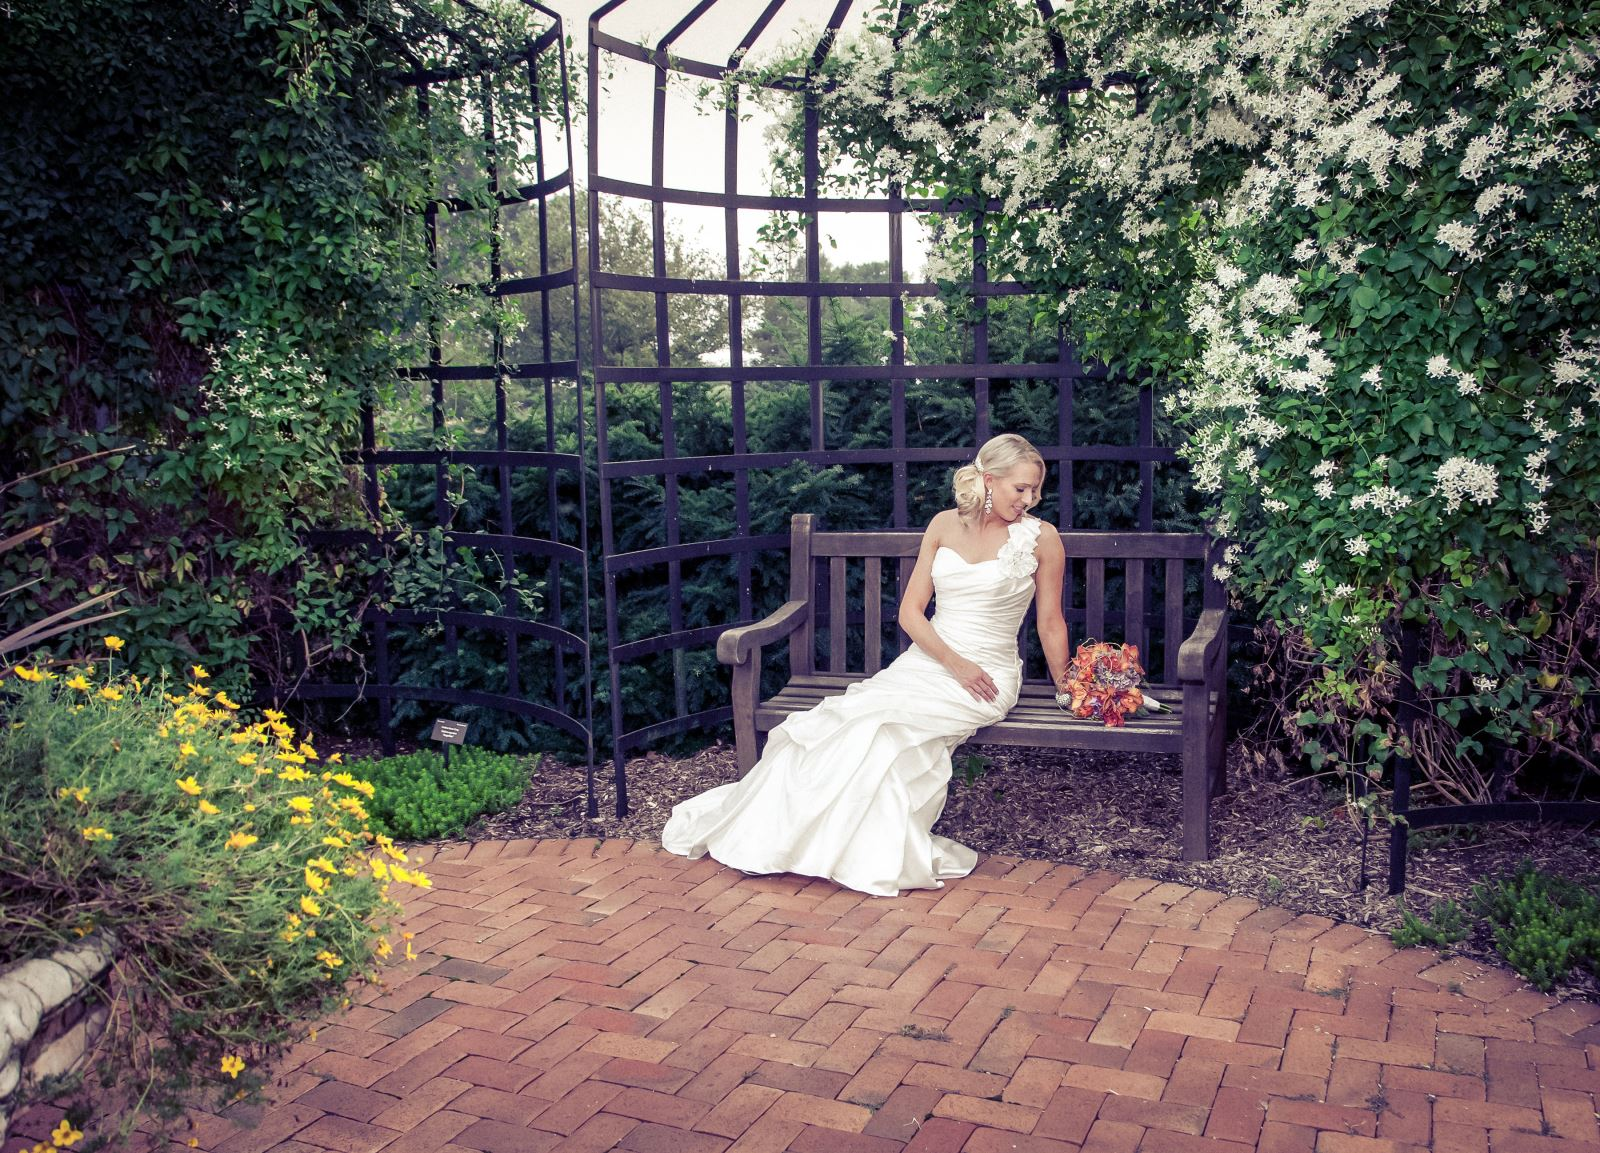 Weddings At The Conservatory Frequently Asked Questions Hershey